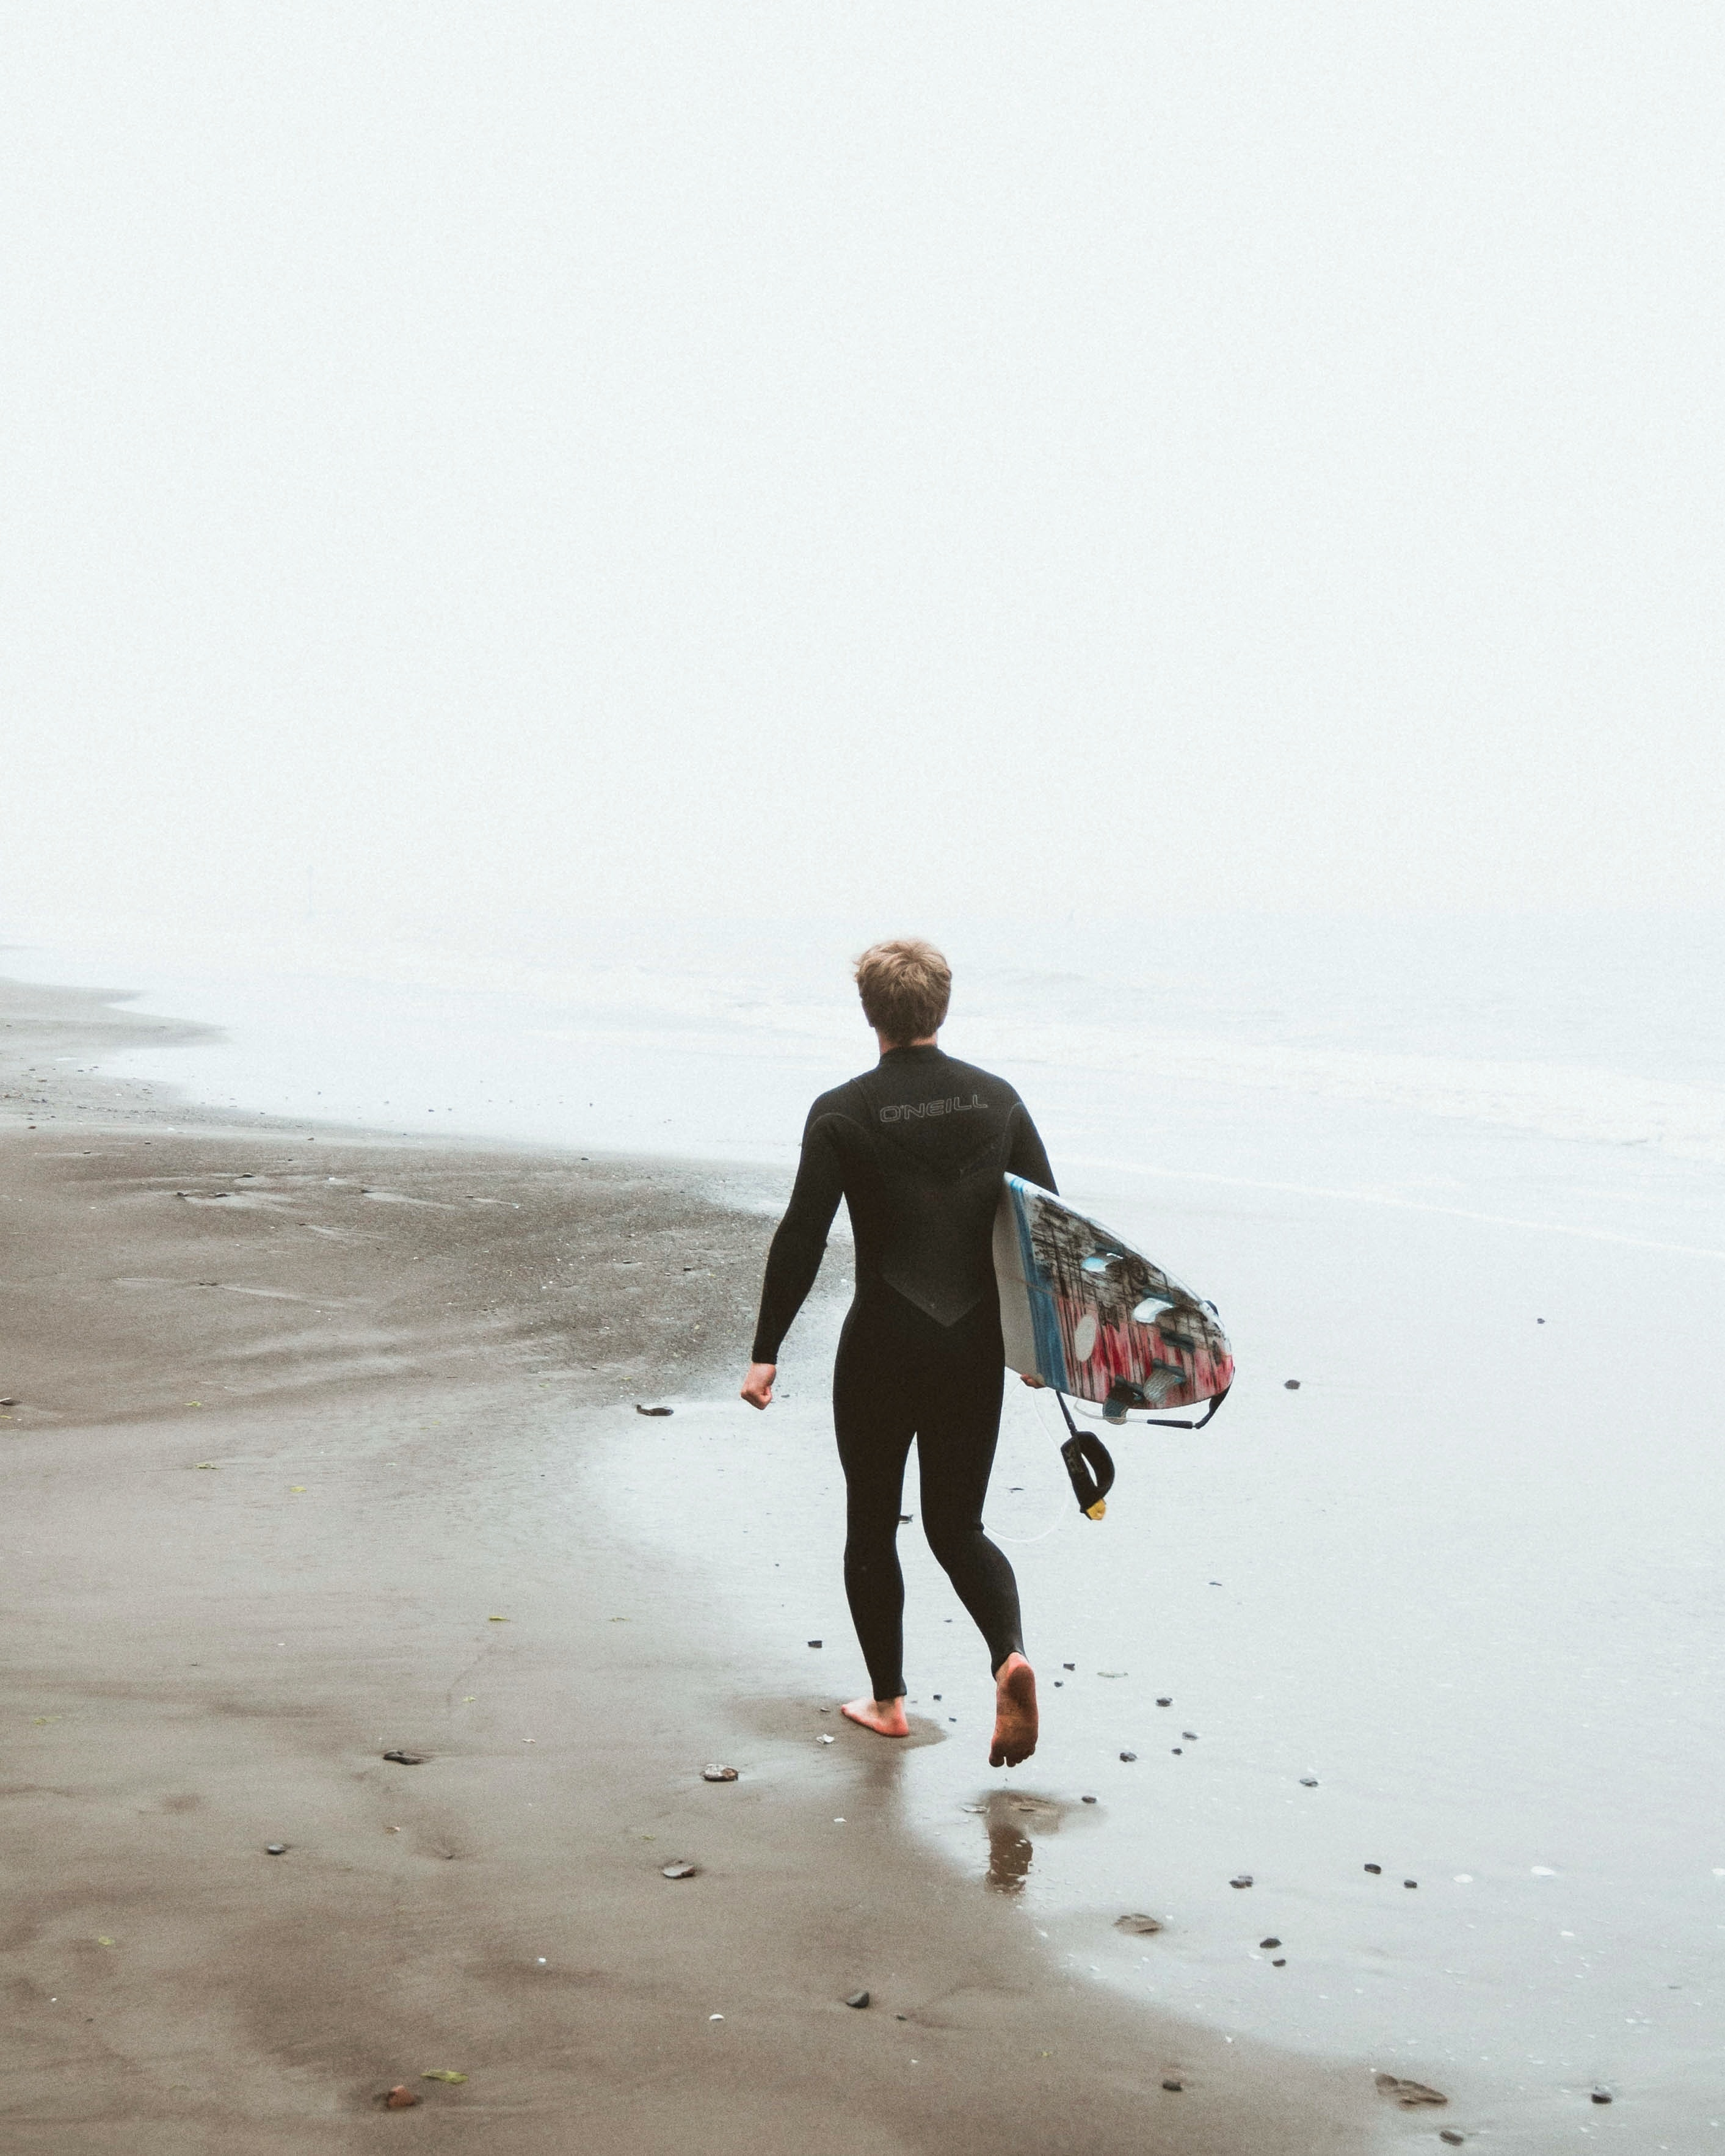 Surfer walks along a misty seashore on the ocean